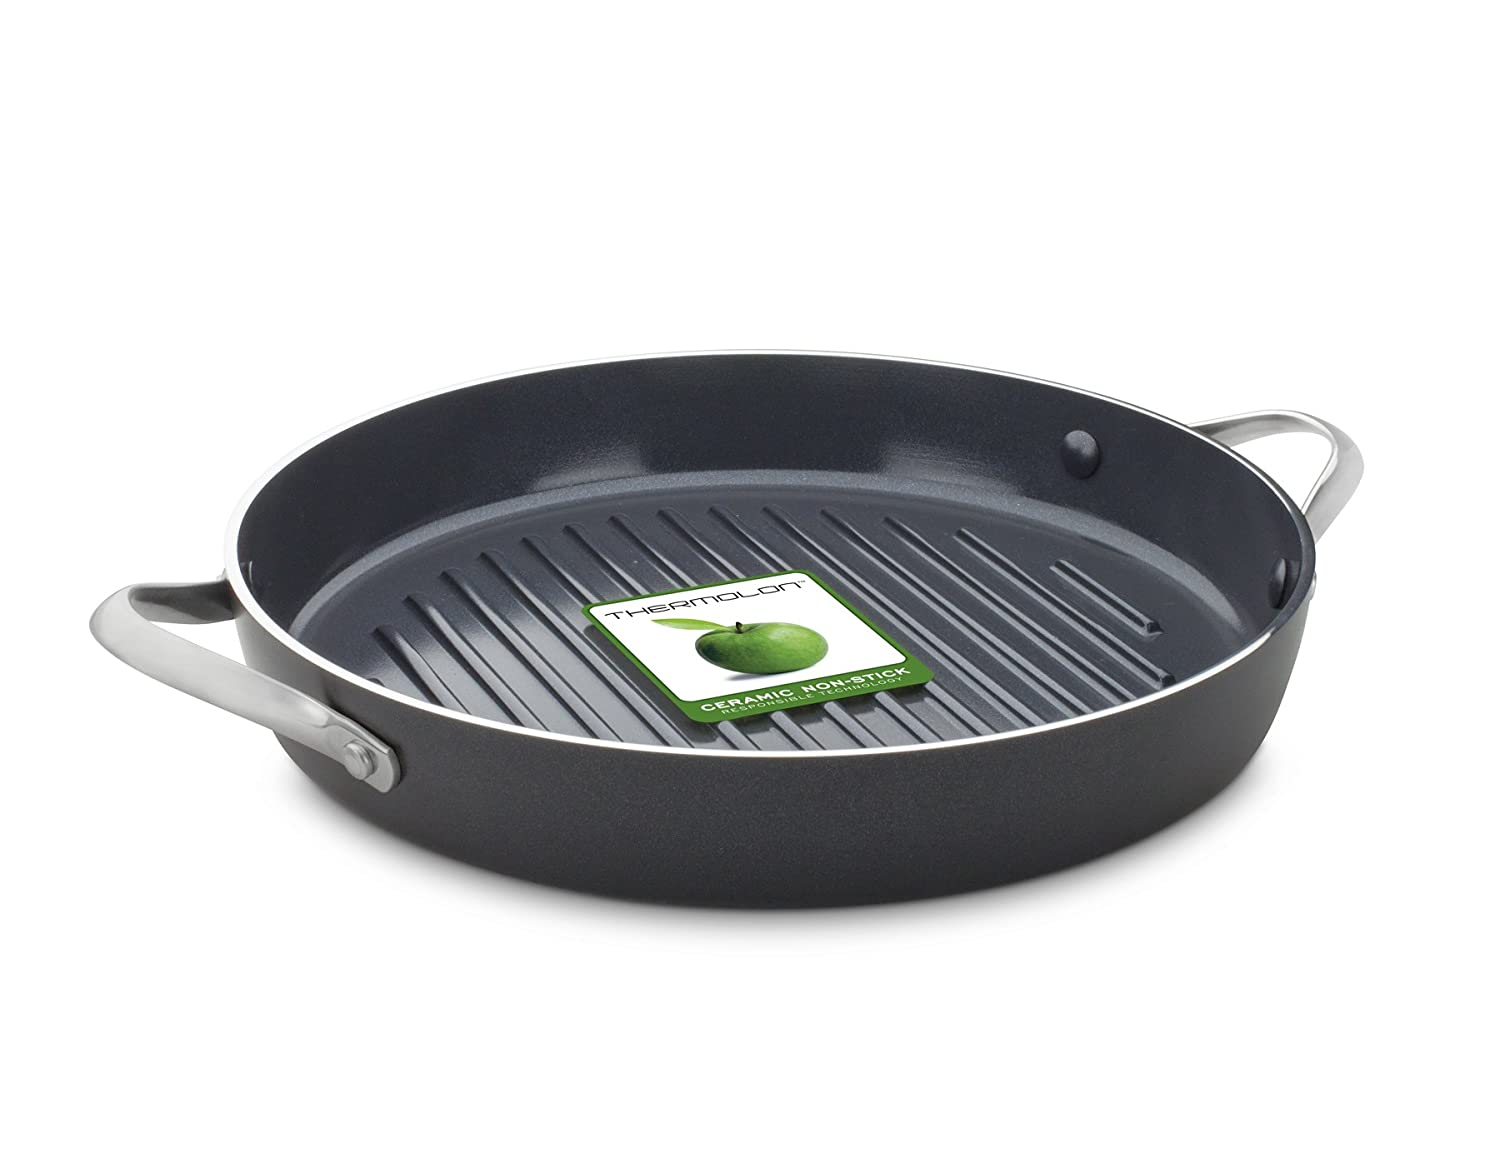 GreenChef Essentials Keramik Rund Grill, antihaftbeschichtet, Schwarz, 28 cm 28 cm The Cookware Company CC000381-001